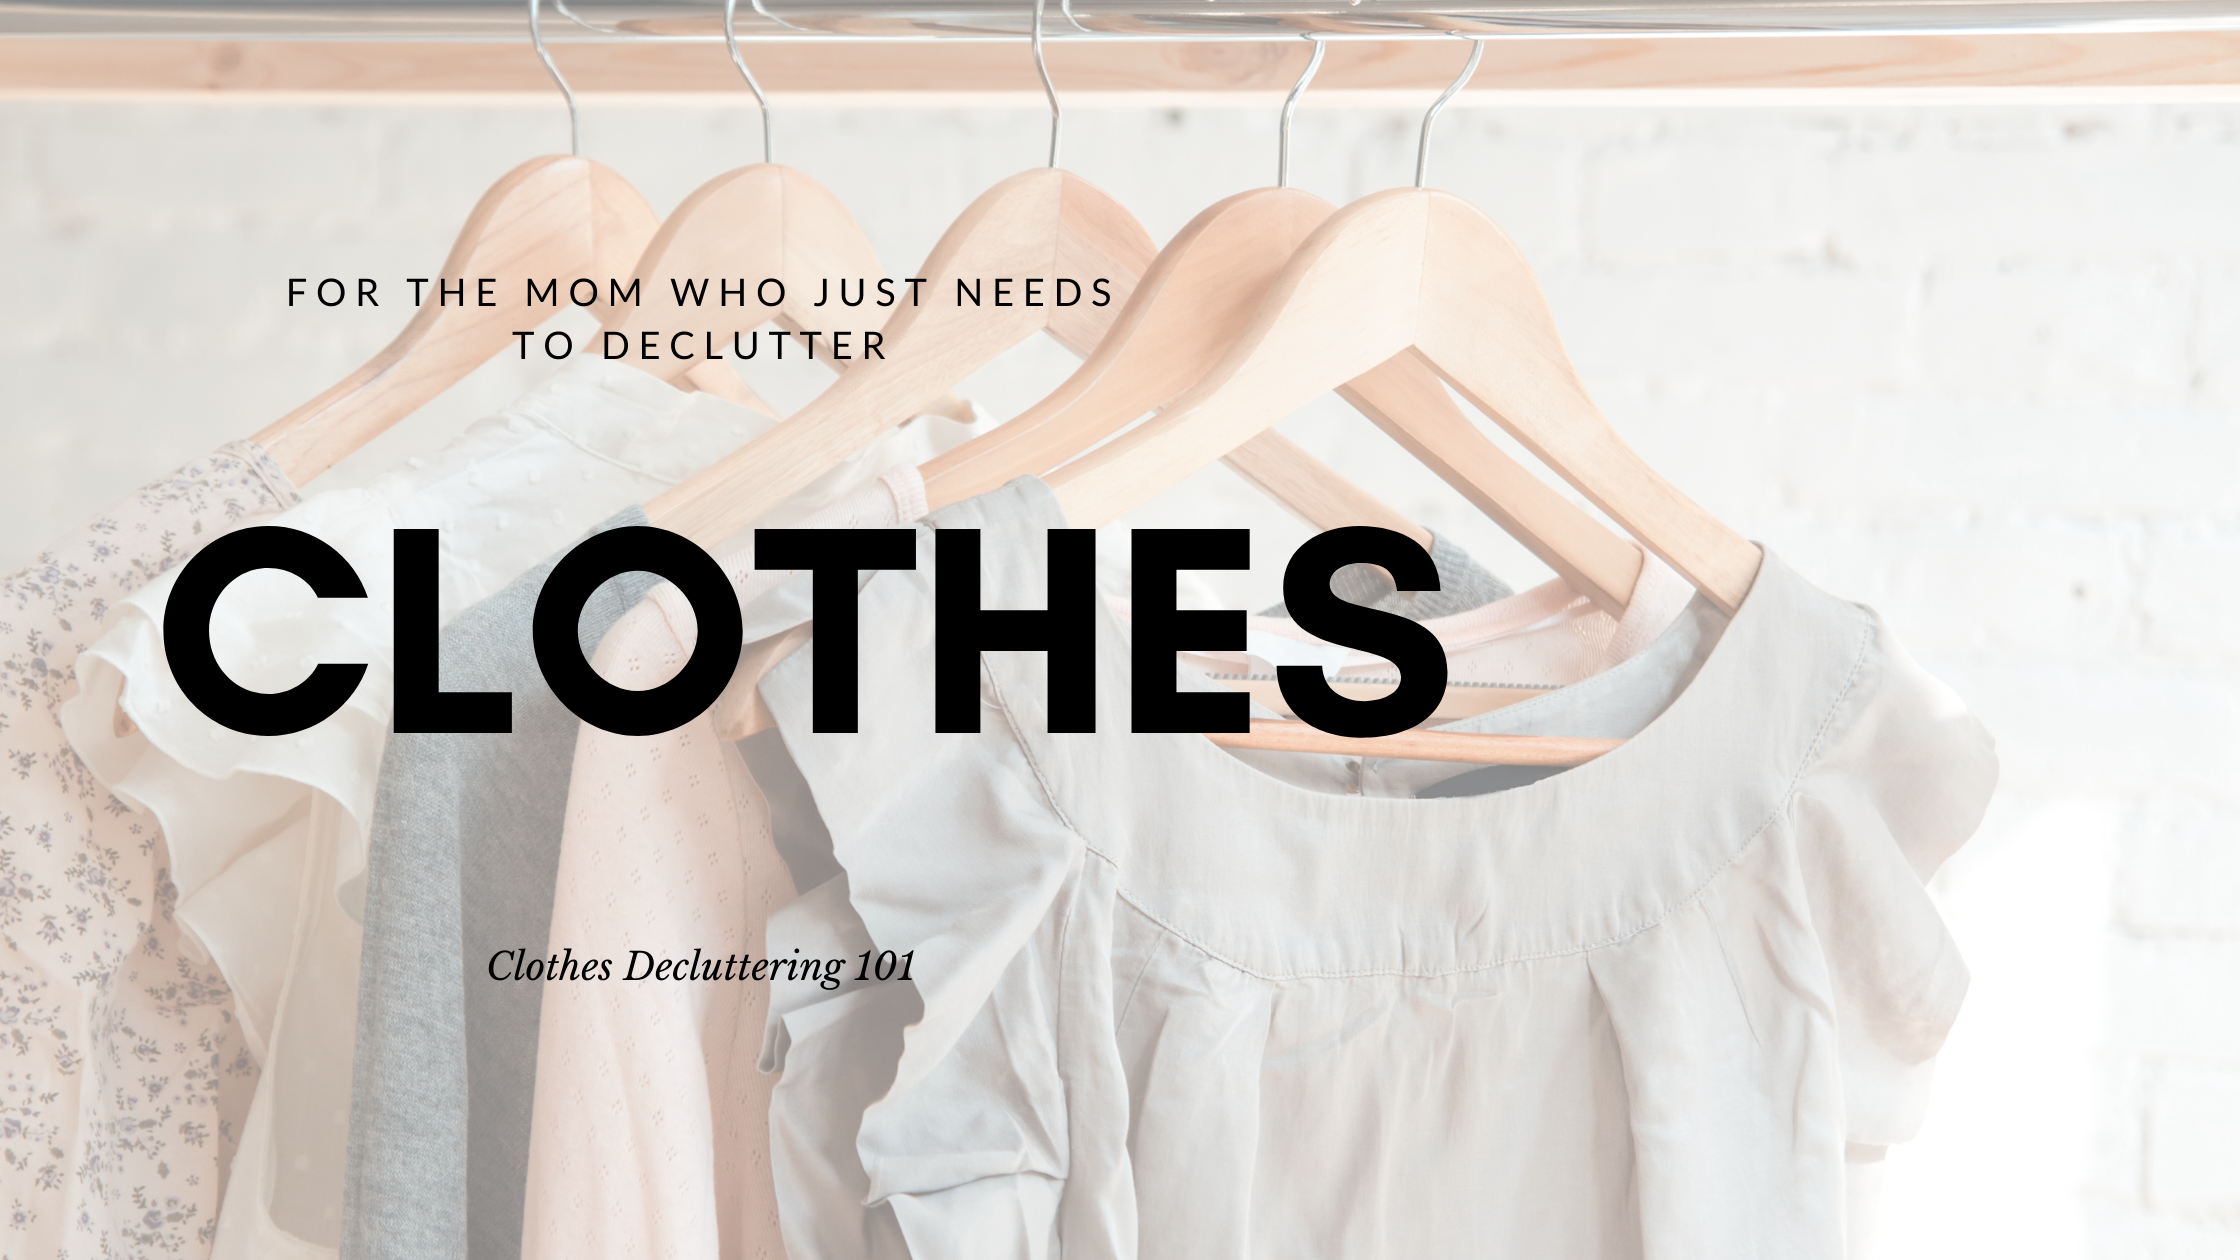 """An image with a curated capsule style wardrobe hanging on a rod with wooden clothes hangers. The text overlay reads """"for the moms who needs to declutter clothes. Clothes Decluttering 101""""."""